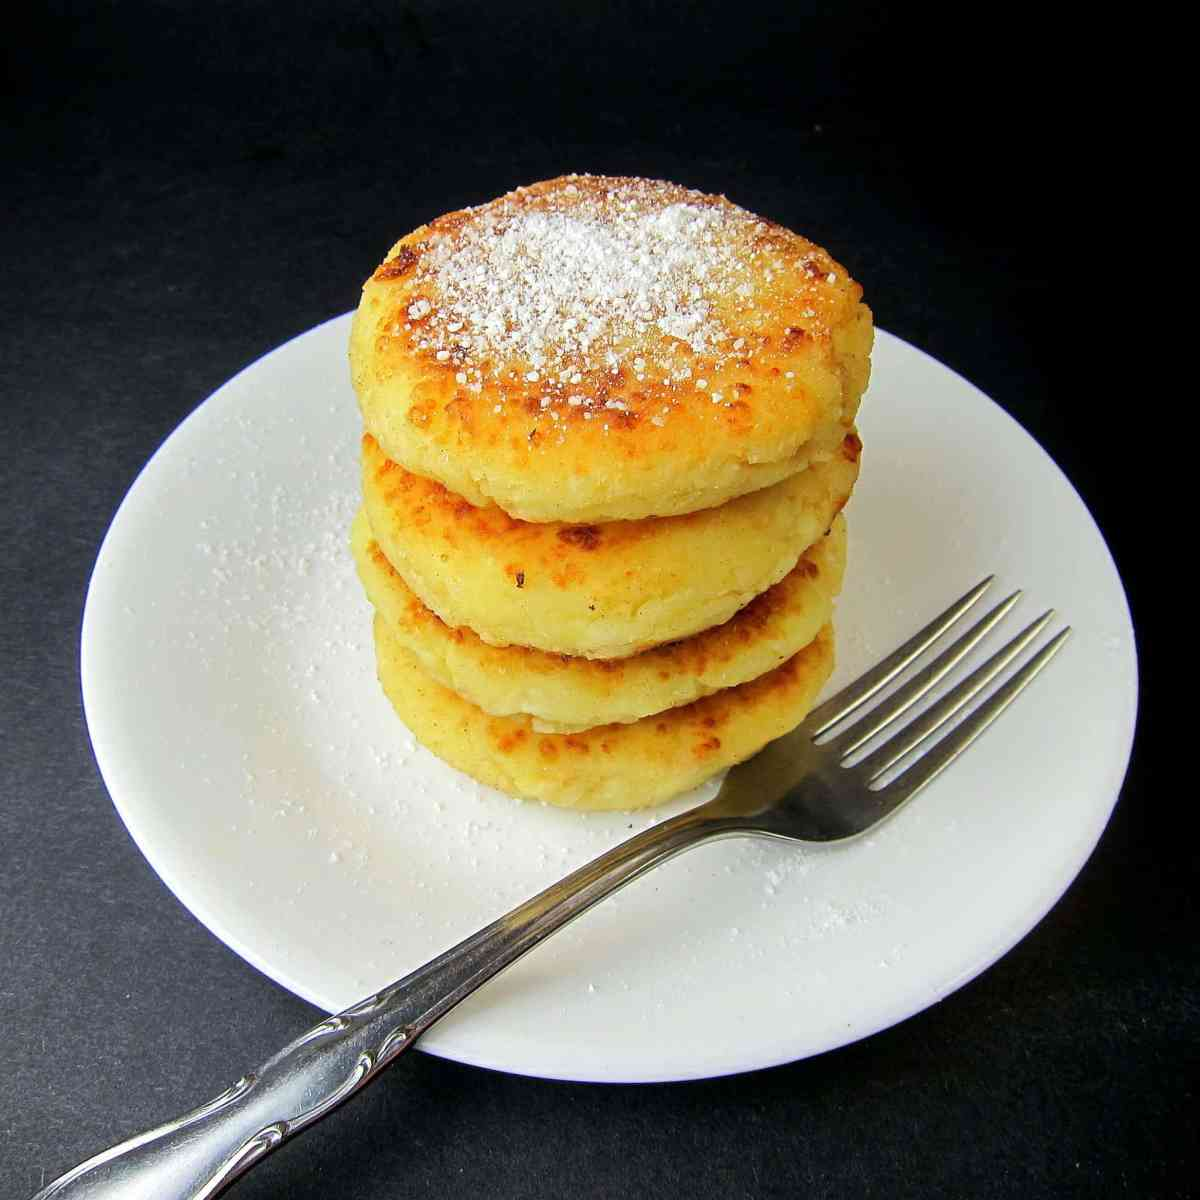 Syrniki (Russian Cheese Pancakes)